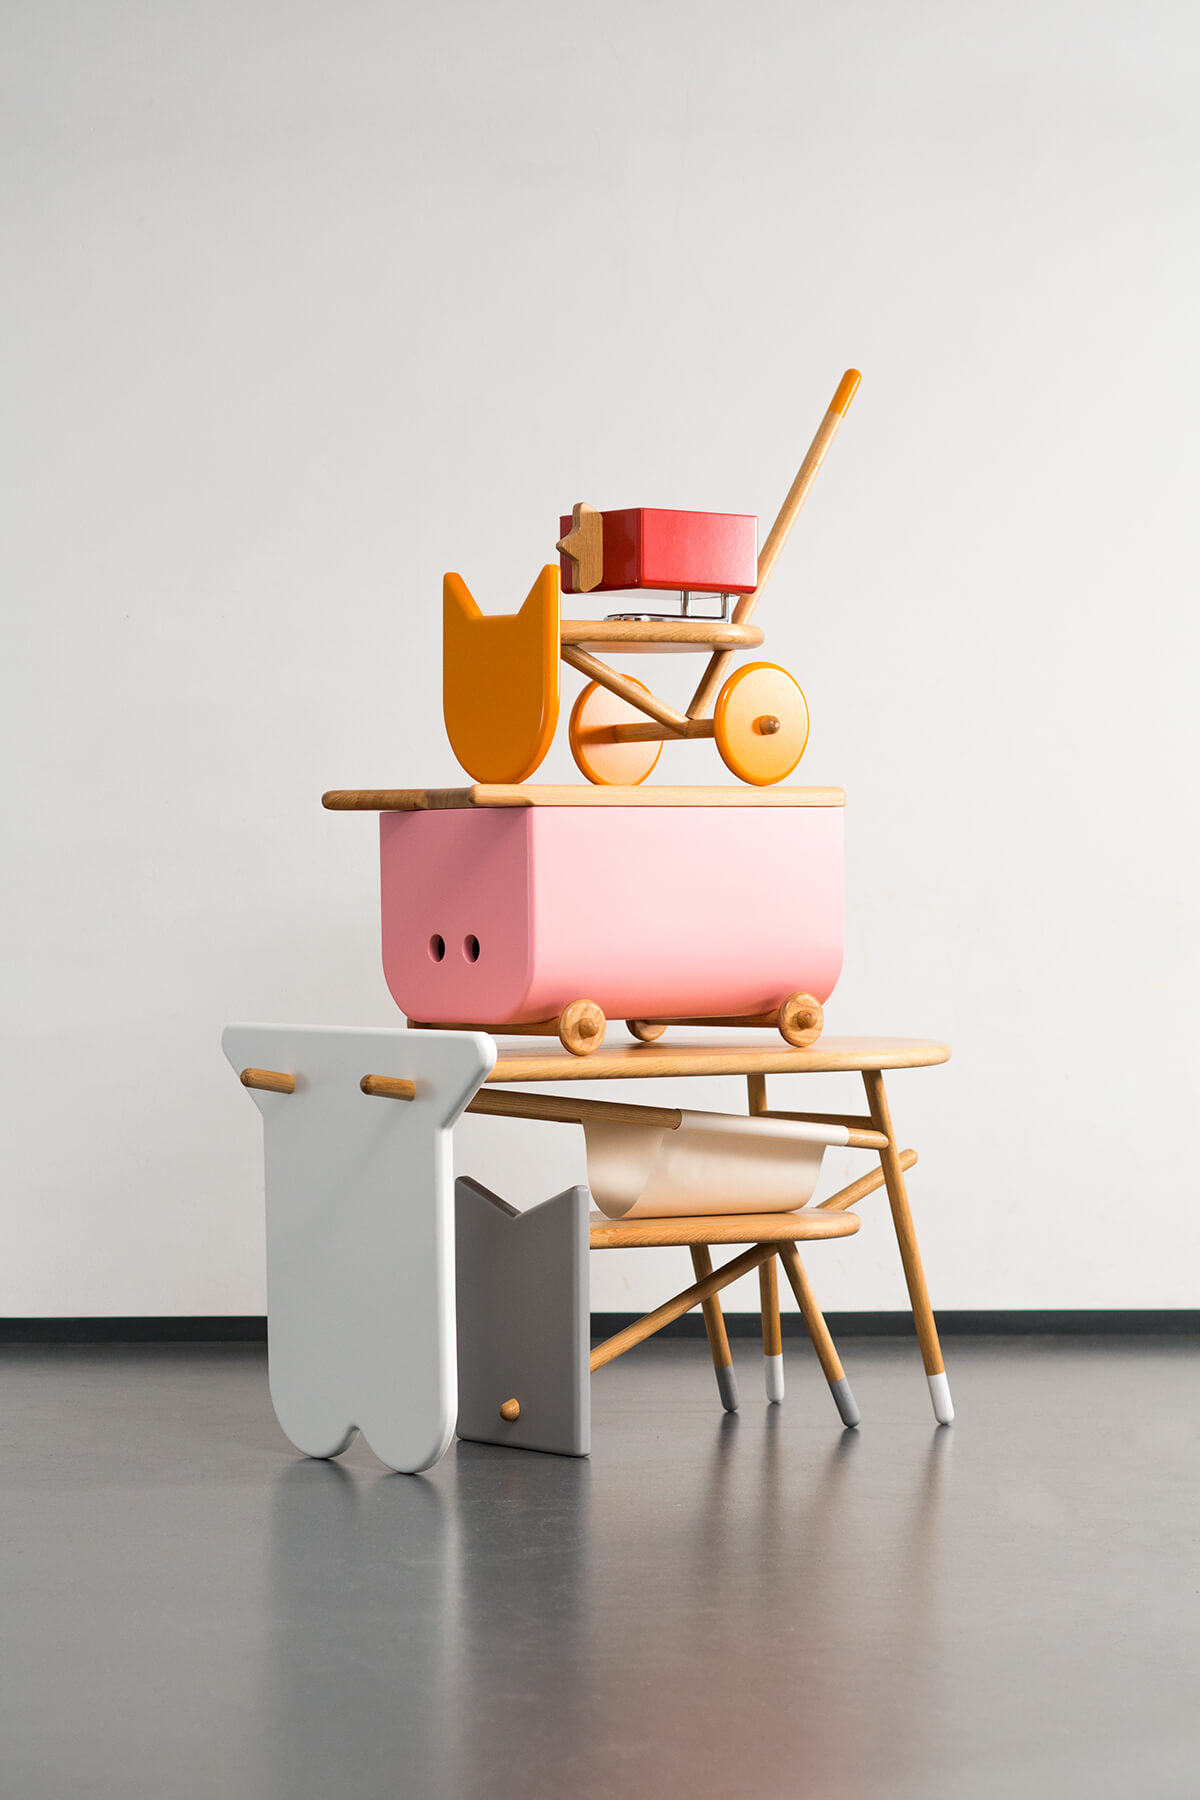 Avlia children's furniture in the shapes of farm animals